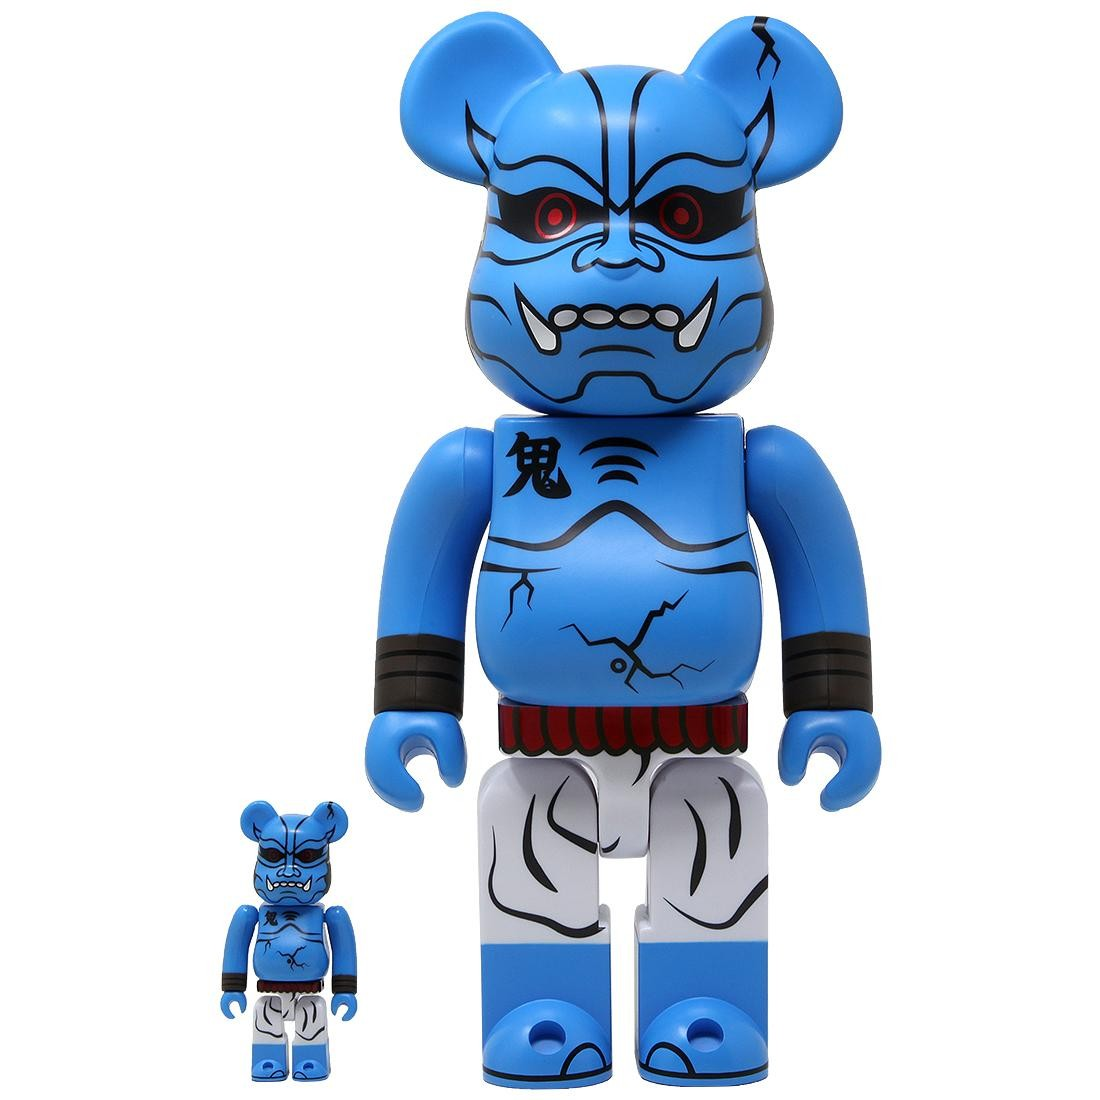 Medicom Aooni Shinobu 100% 400% Bearbrick Figure (blue)